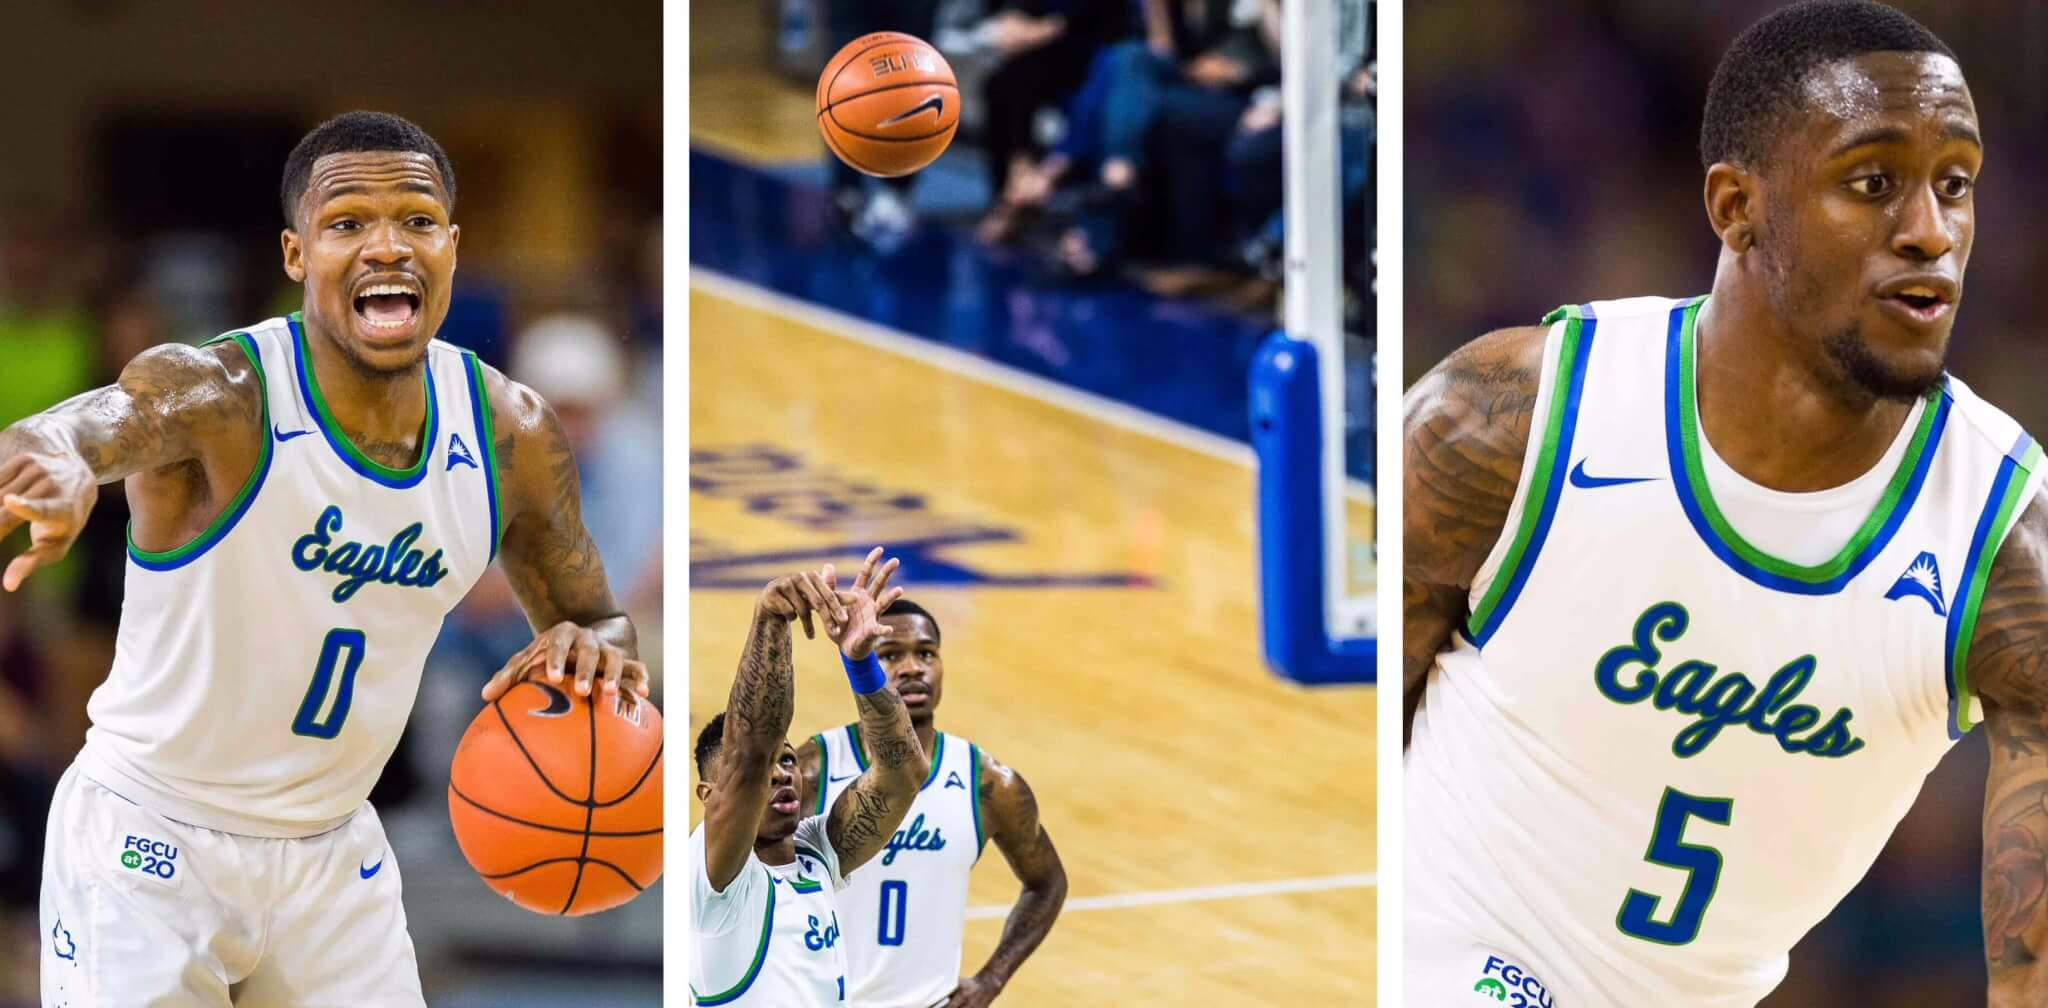 FGCU men's basketball defeats USC Upstate in overtime to earn a share of the ASUN regular-season title